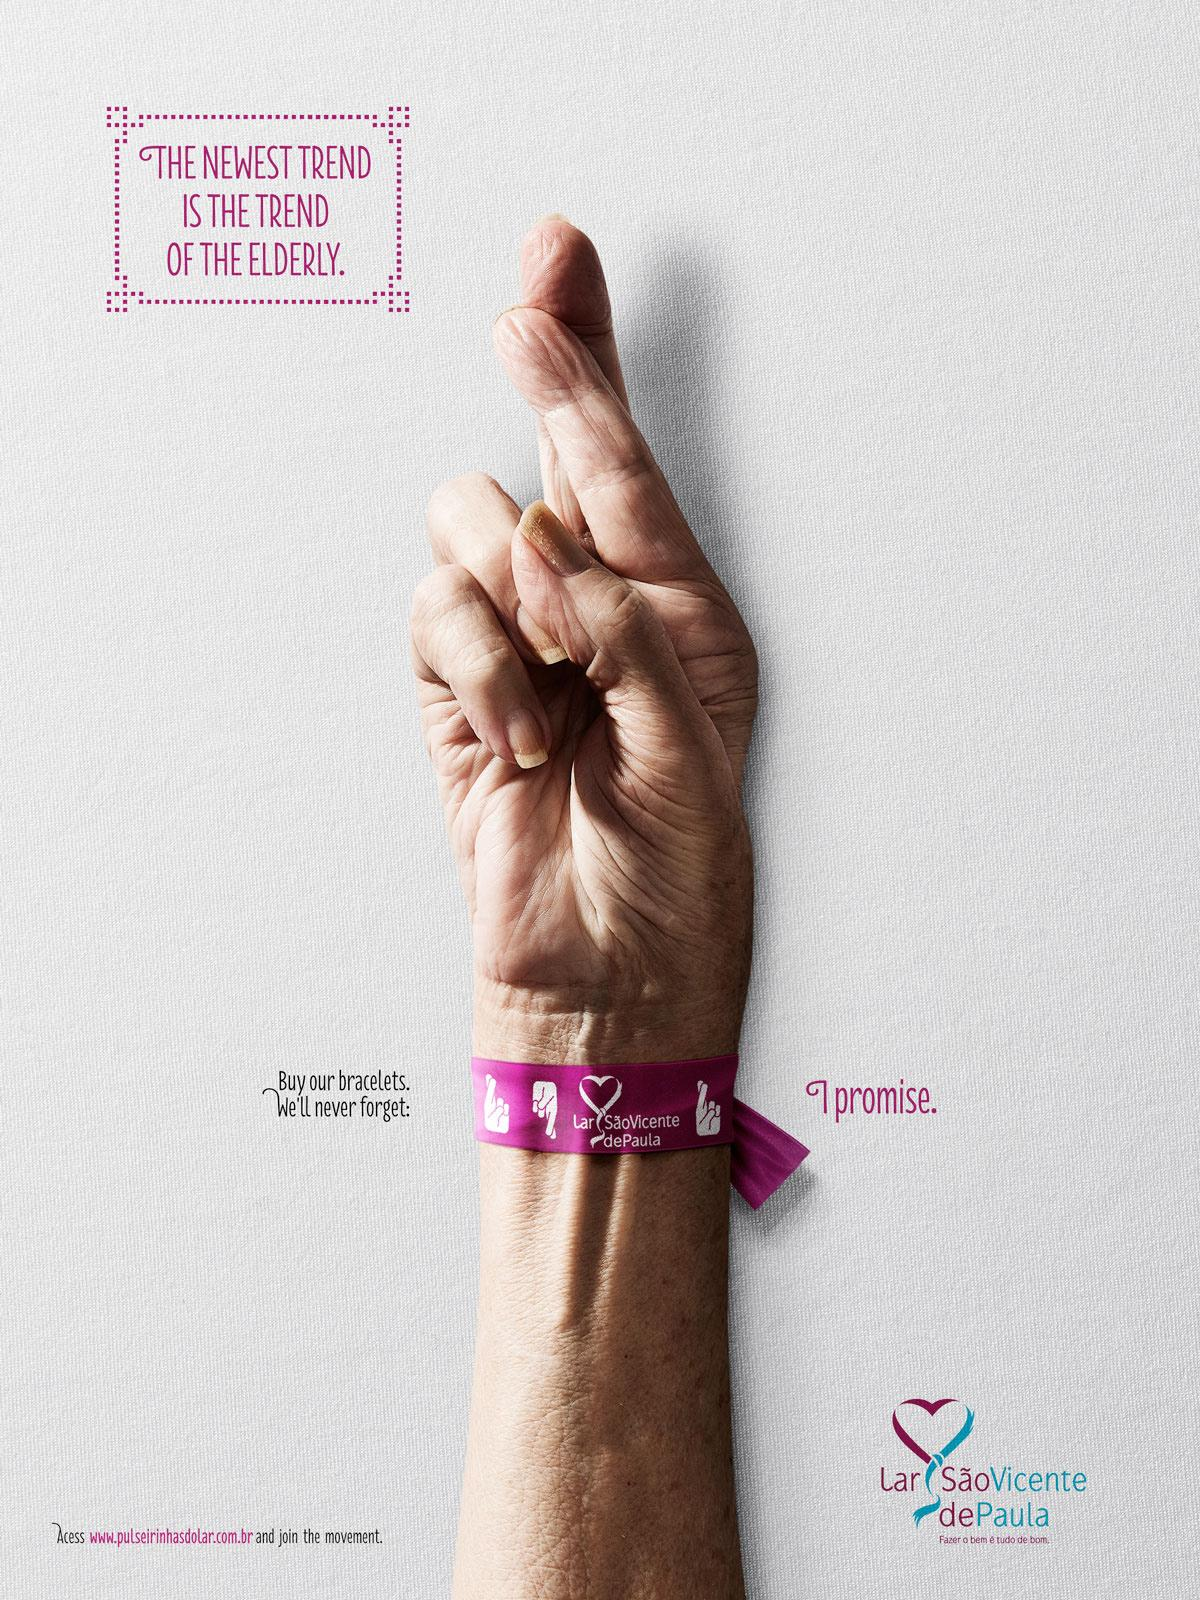 Lar São Vicente de Paula Print Ad -  The newest trend is the trend of elderly, 5